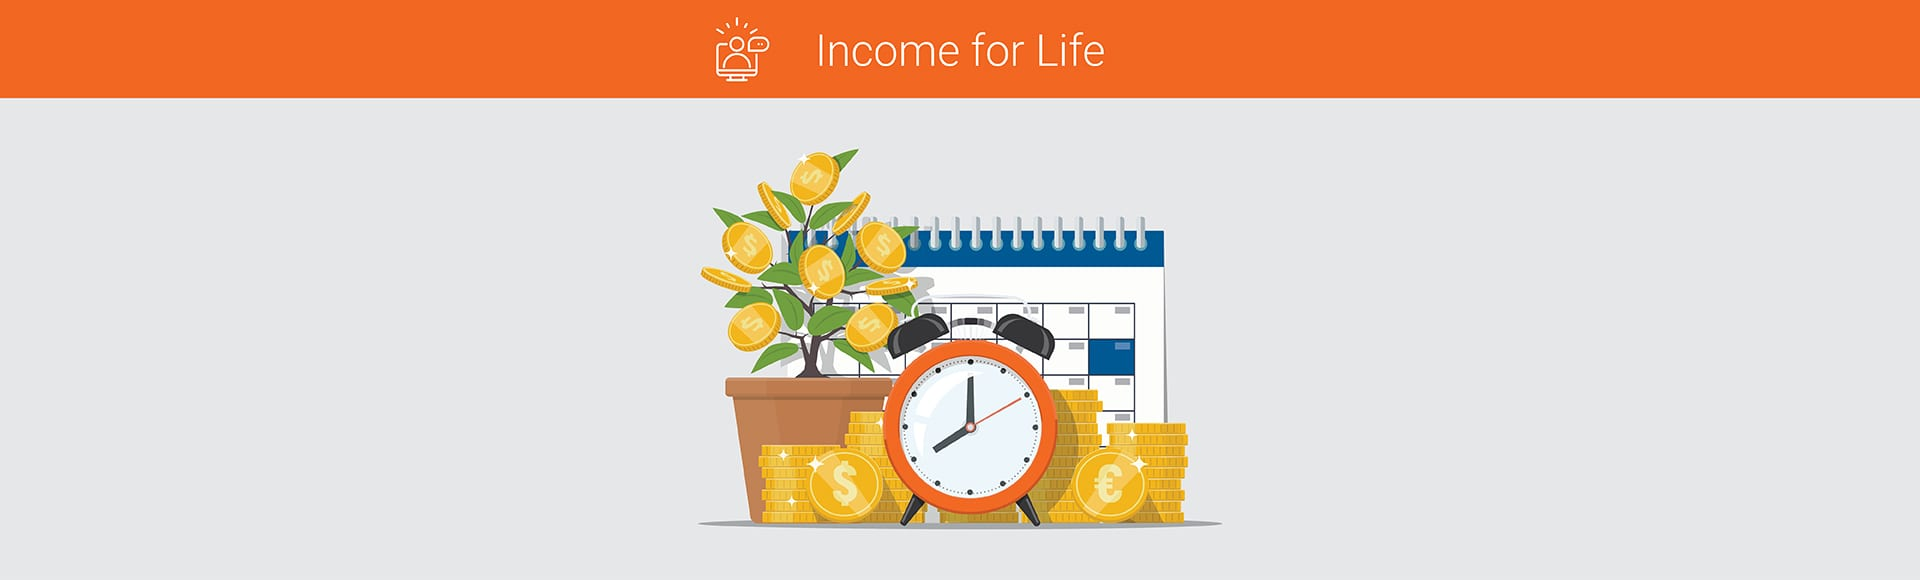 Business financial concept time is money. Coins, alarm clock, money tree and calendar. Investment, financial planning, payment deadline, time management.